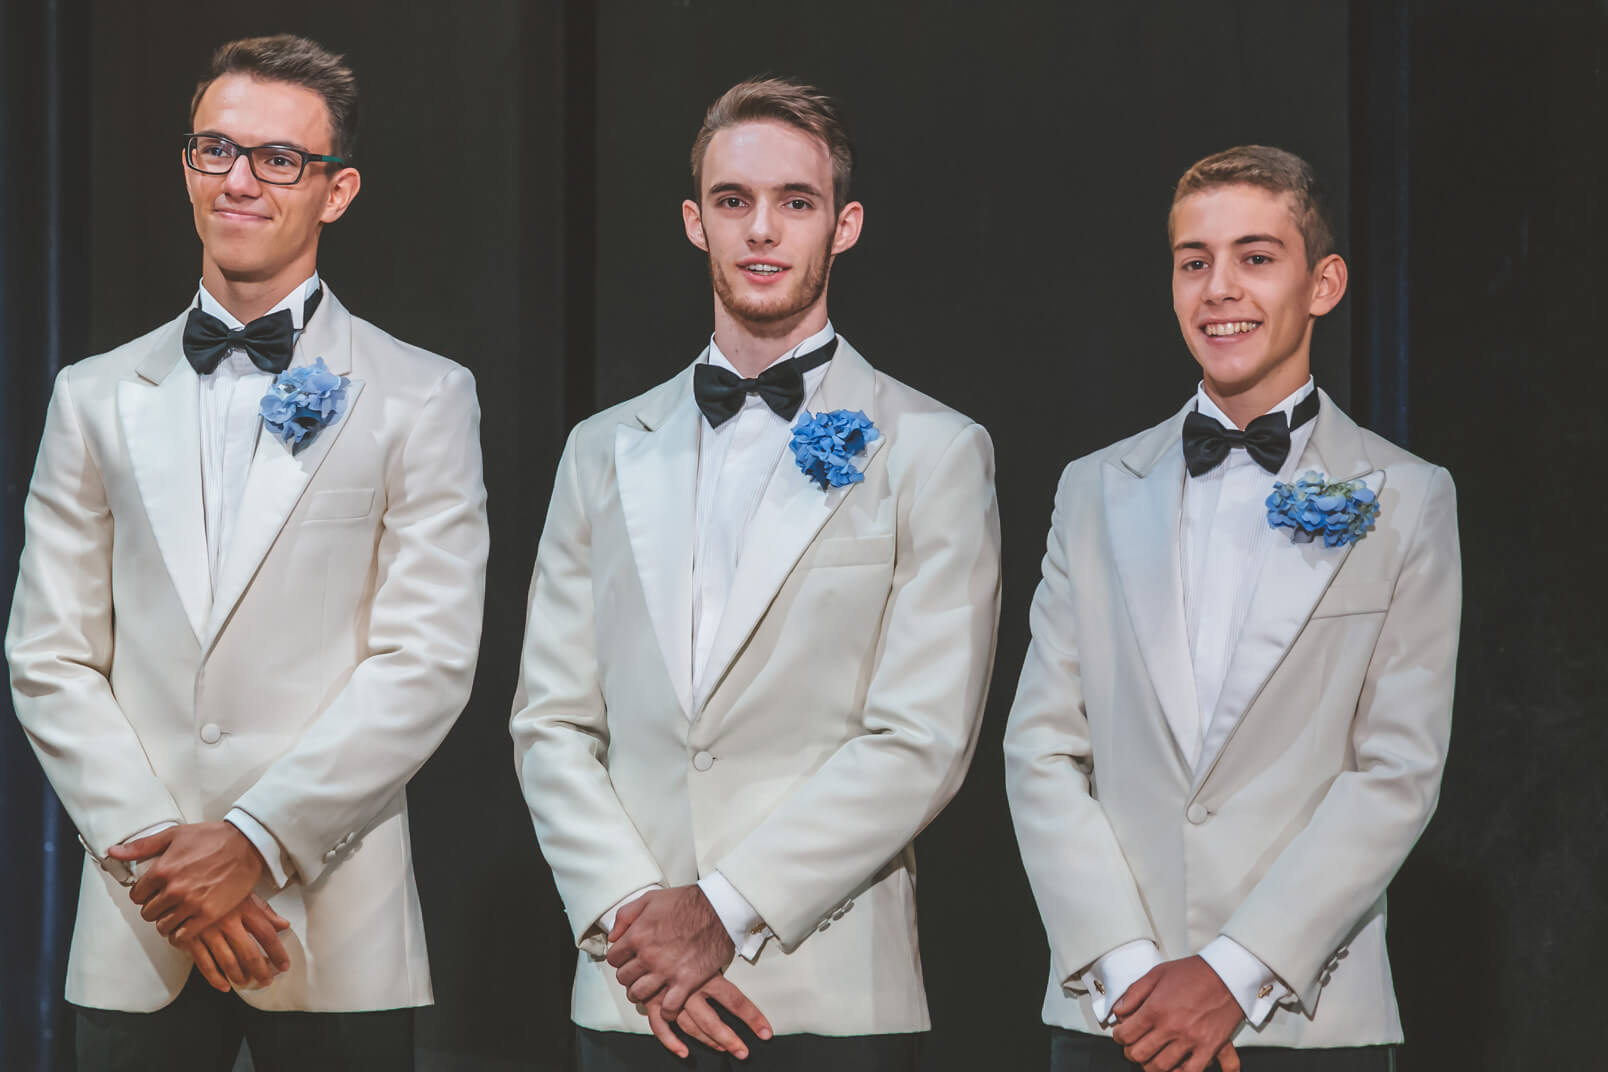 Bestmen's tuxedos (white jacket, black pants) and the blue buttonholes made with hortensia flowers.